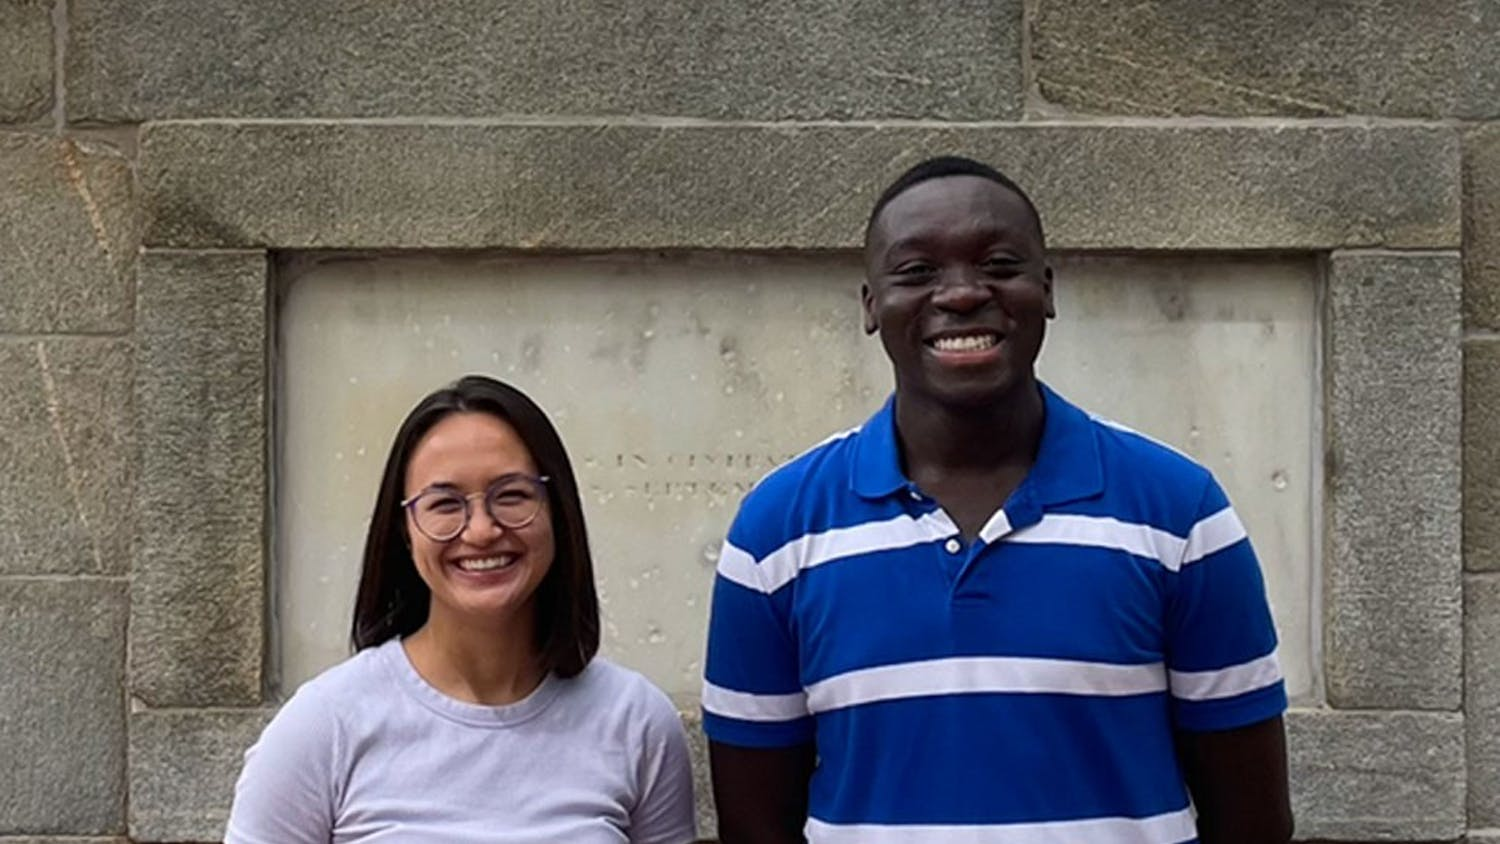 Layne Scopano and Kwame Kennedy, the co-founders of a newspaper that humanizes people experiencing homelessness in Columbia. The publication will offer policy recommendations to solve homelessness and deconstruct stereotypes by providing a platform to houseless people.